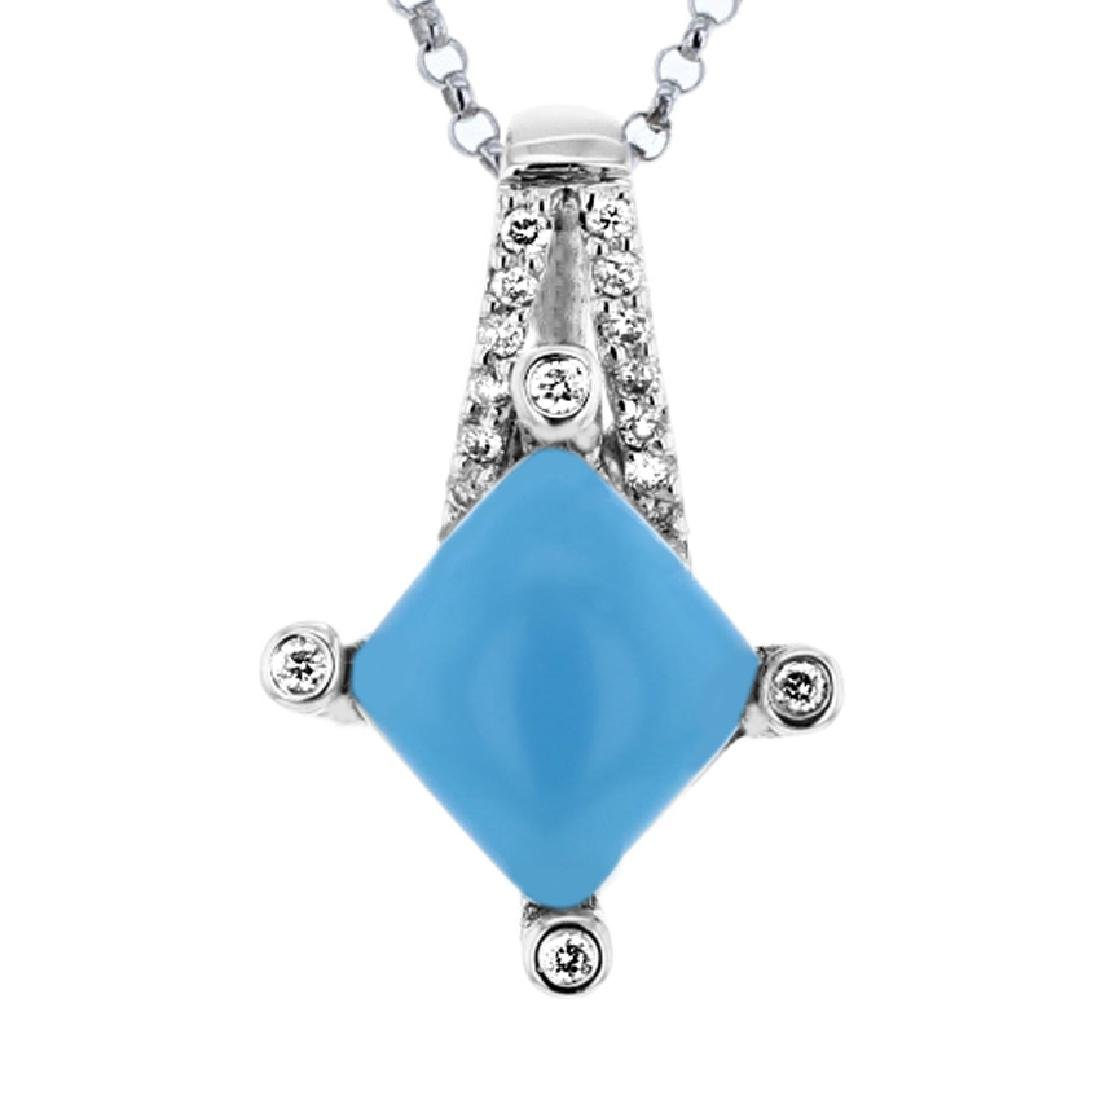 14KT White Gold 1.92ct Turquoise and Diamond Pendant